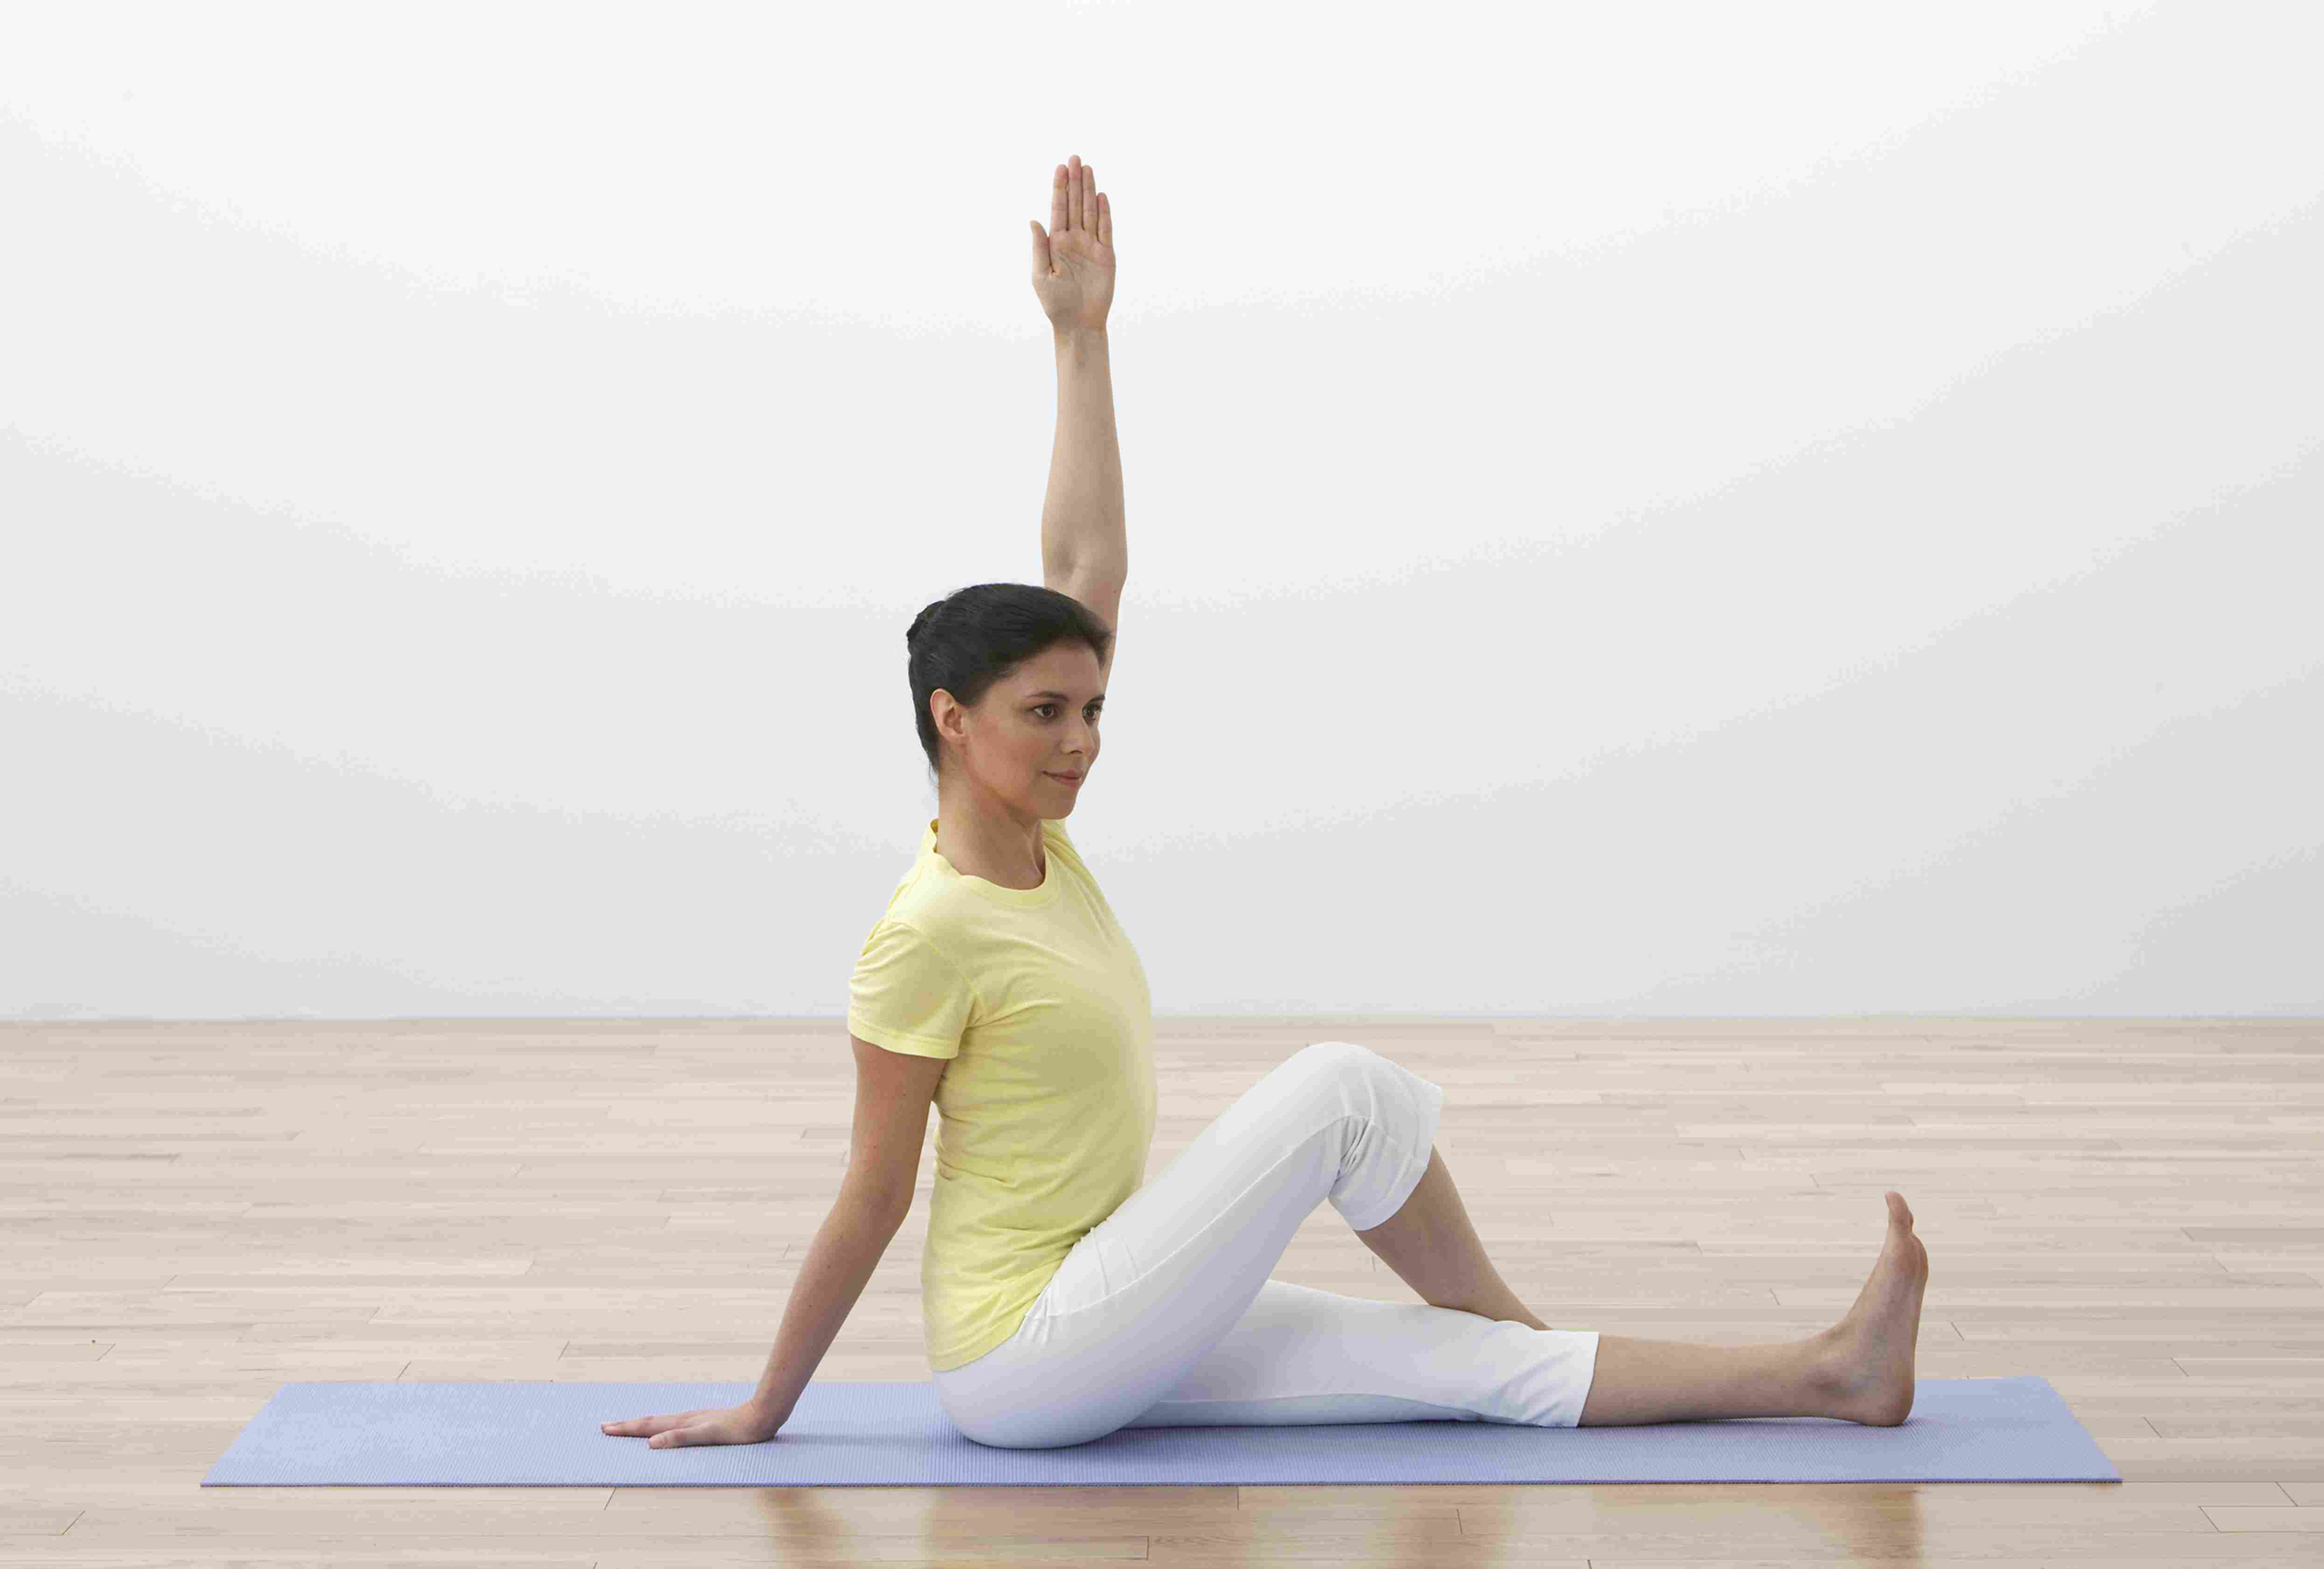 Woman on yoga mat performing spinal twist yoga exercise